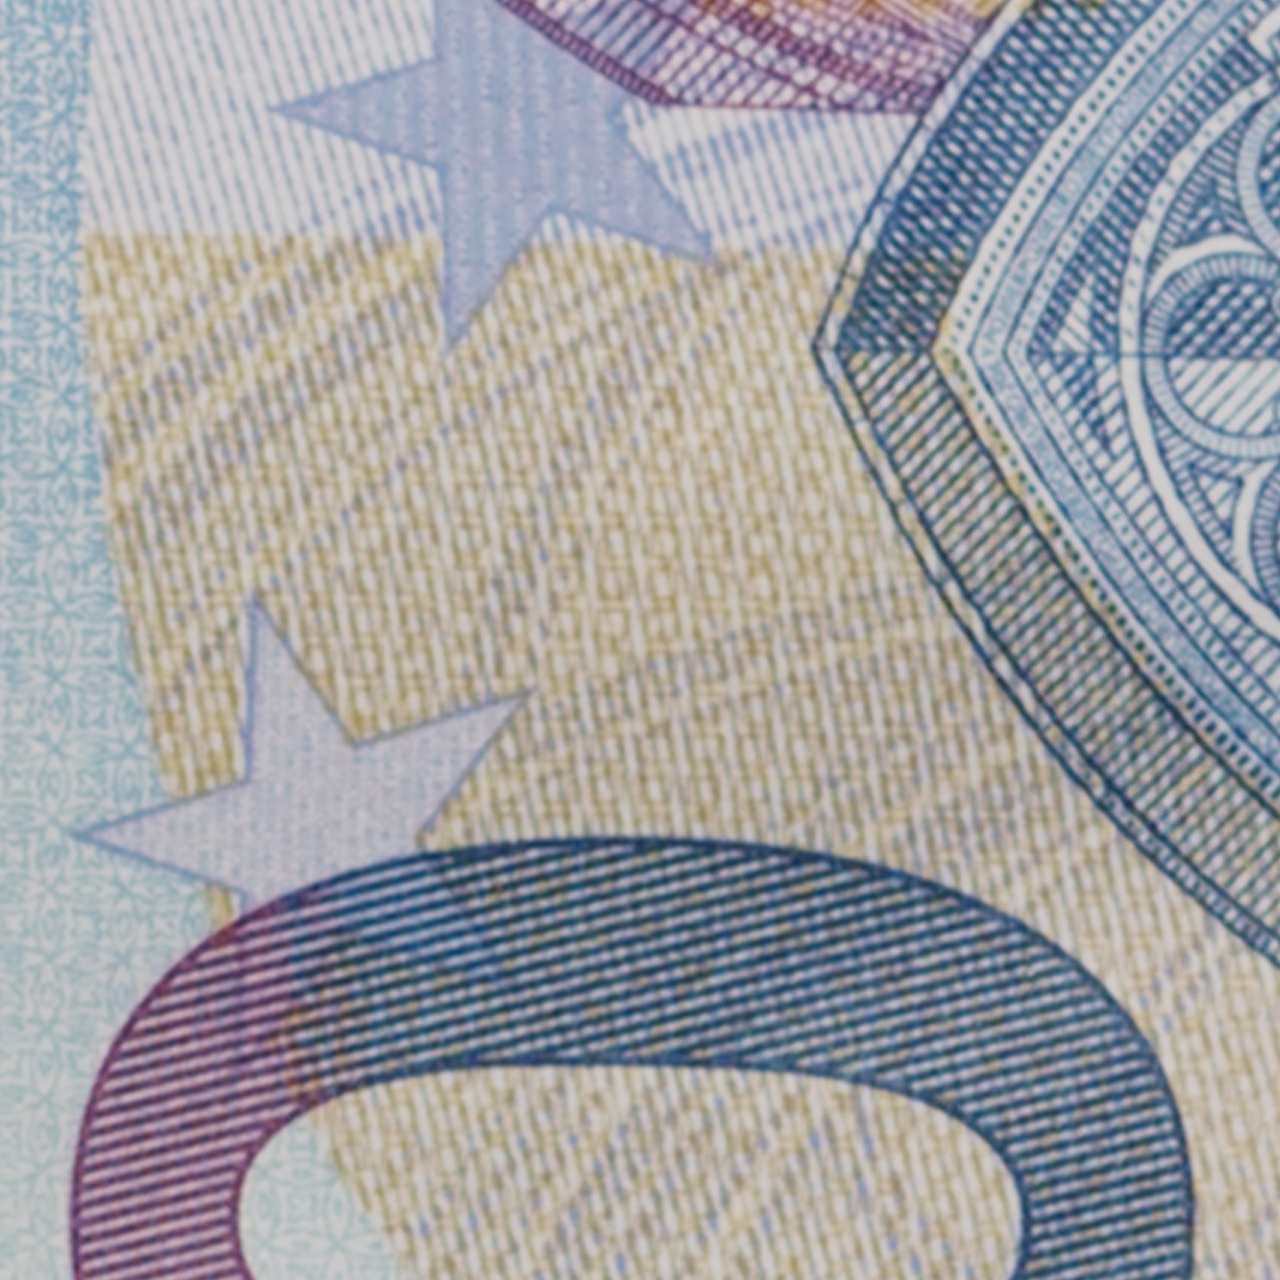 Euro_Banknotes_Detail_closer_BRAW.jpg